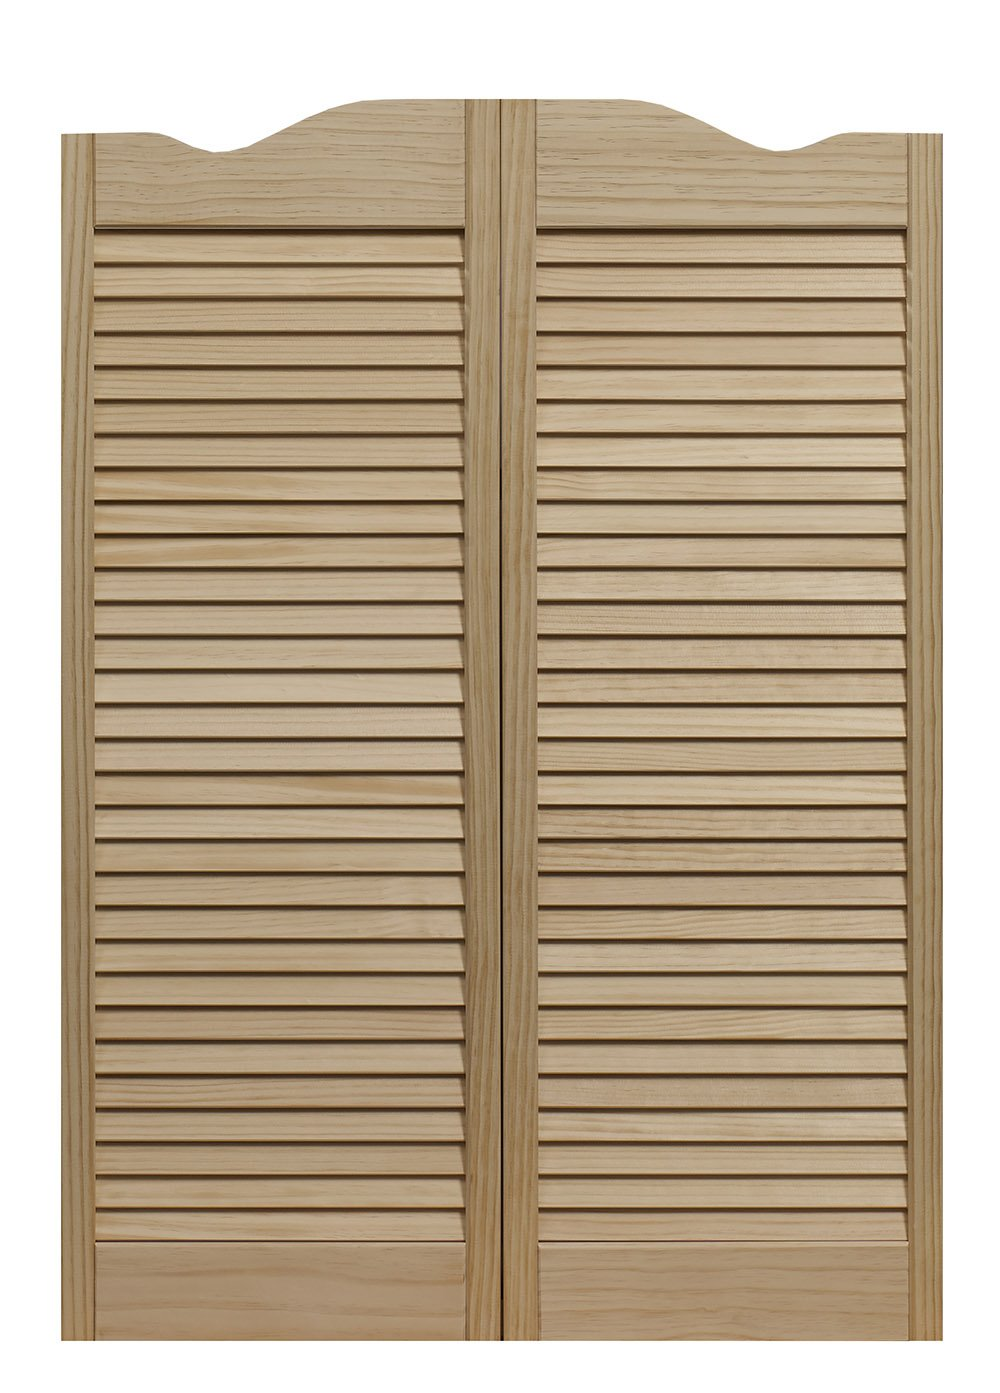 Pinecroft 858642 Dixieland Louvered Café Interior Swing Wood Door, 36'' x 42'', Unfinished by LTL Home Products